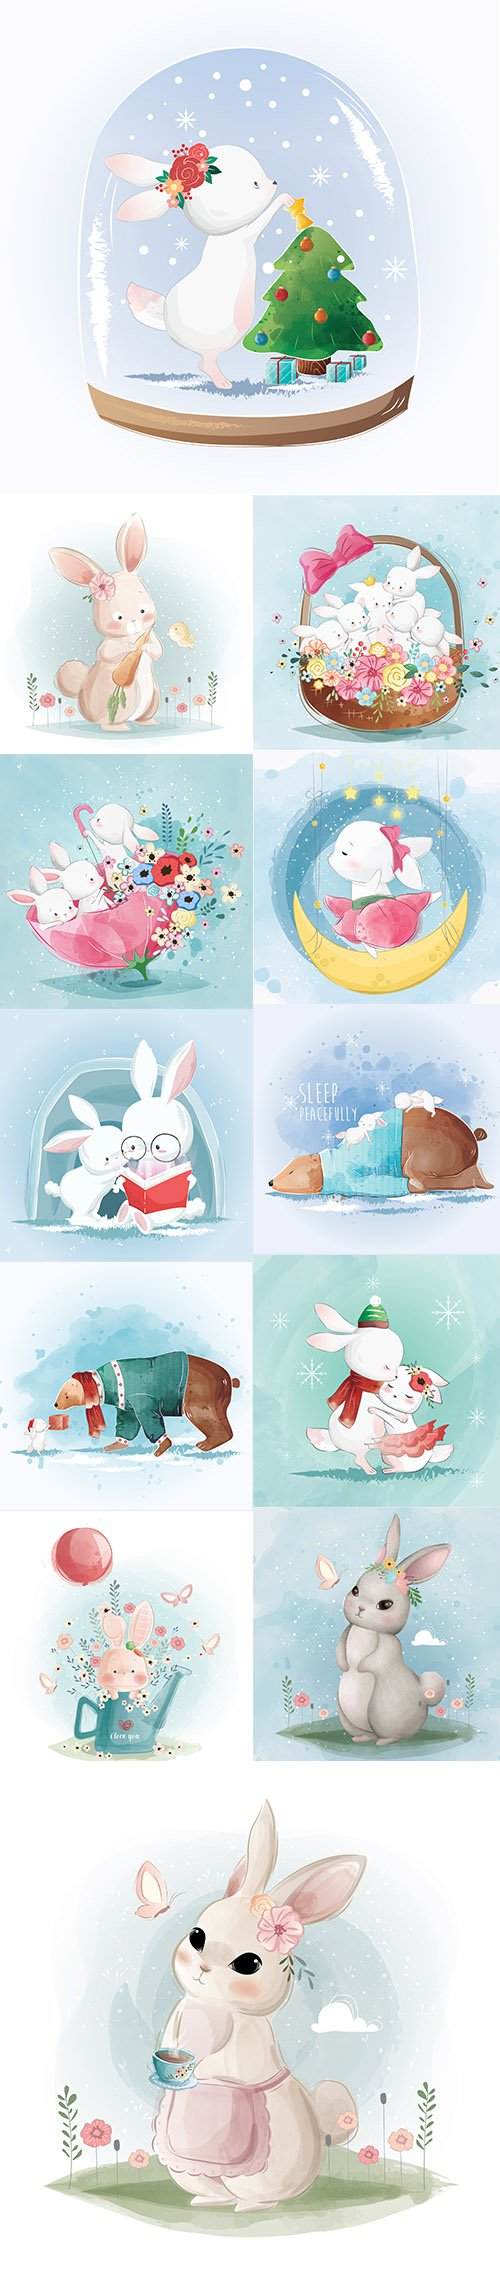 Set of Hand Draw Watercolor Adorable Animals Illustrations Vol 2